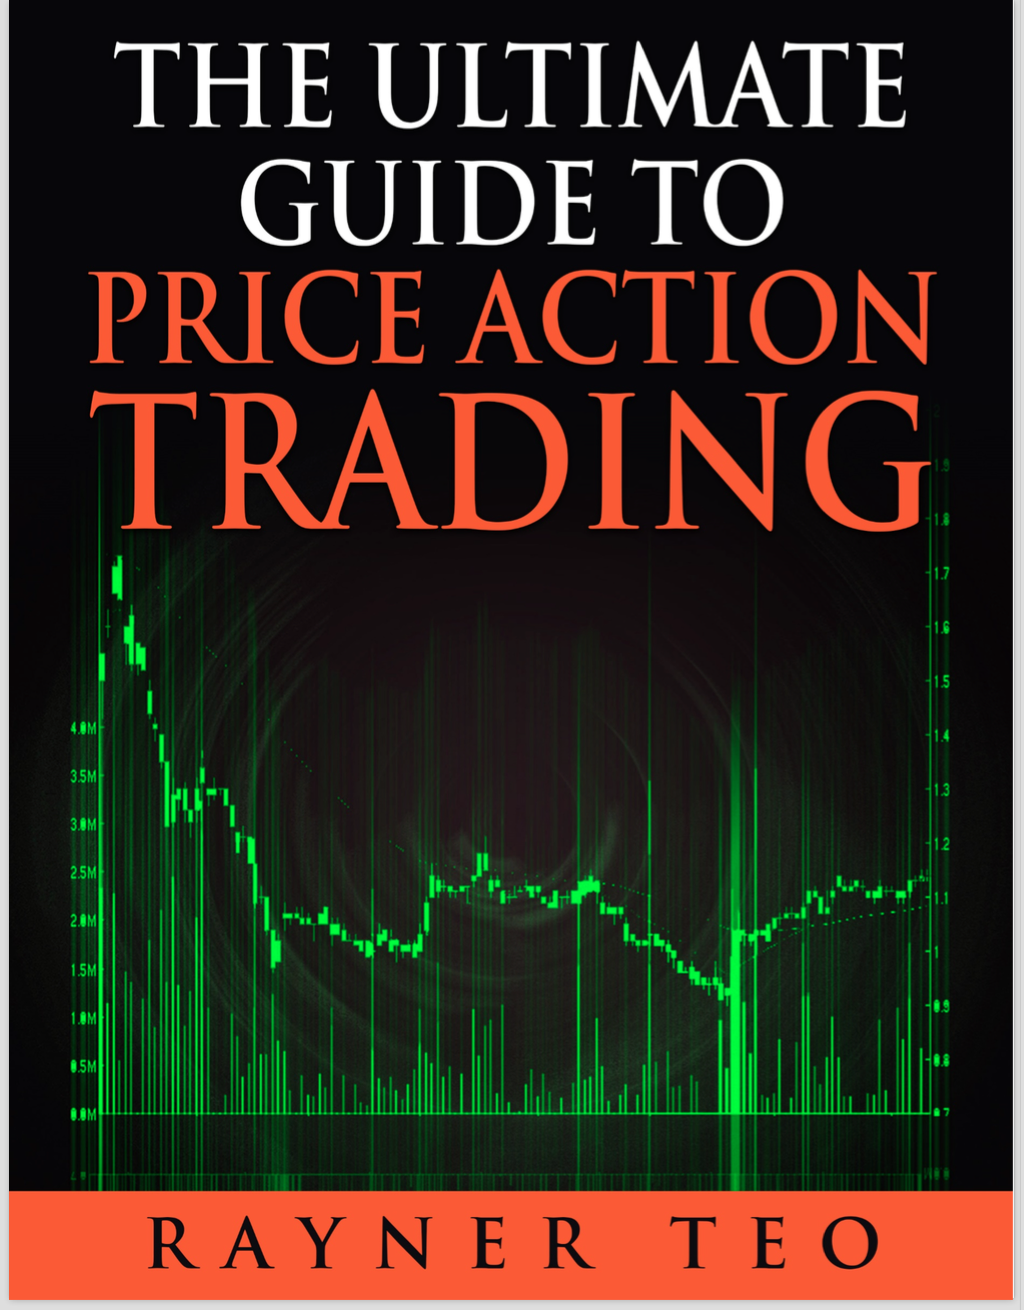 The-ultimate-guide-to-price-action-trading